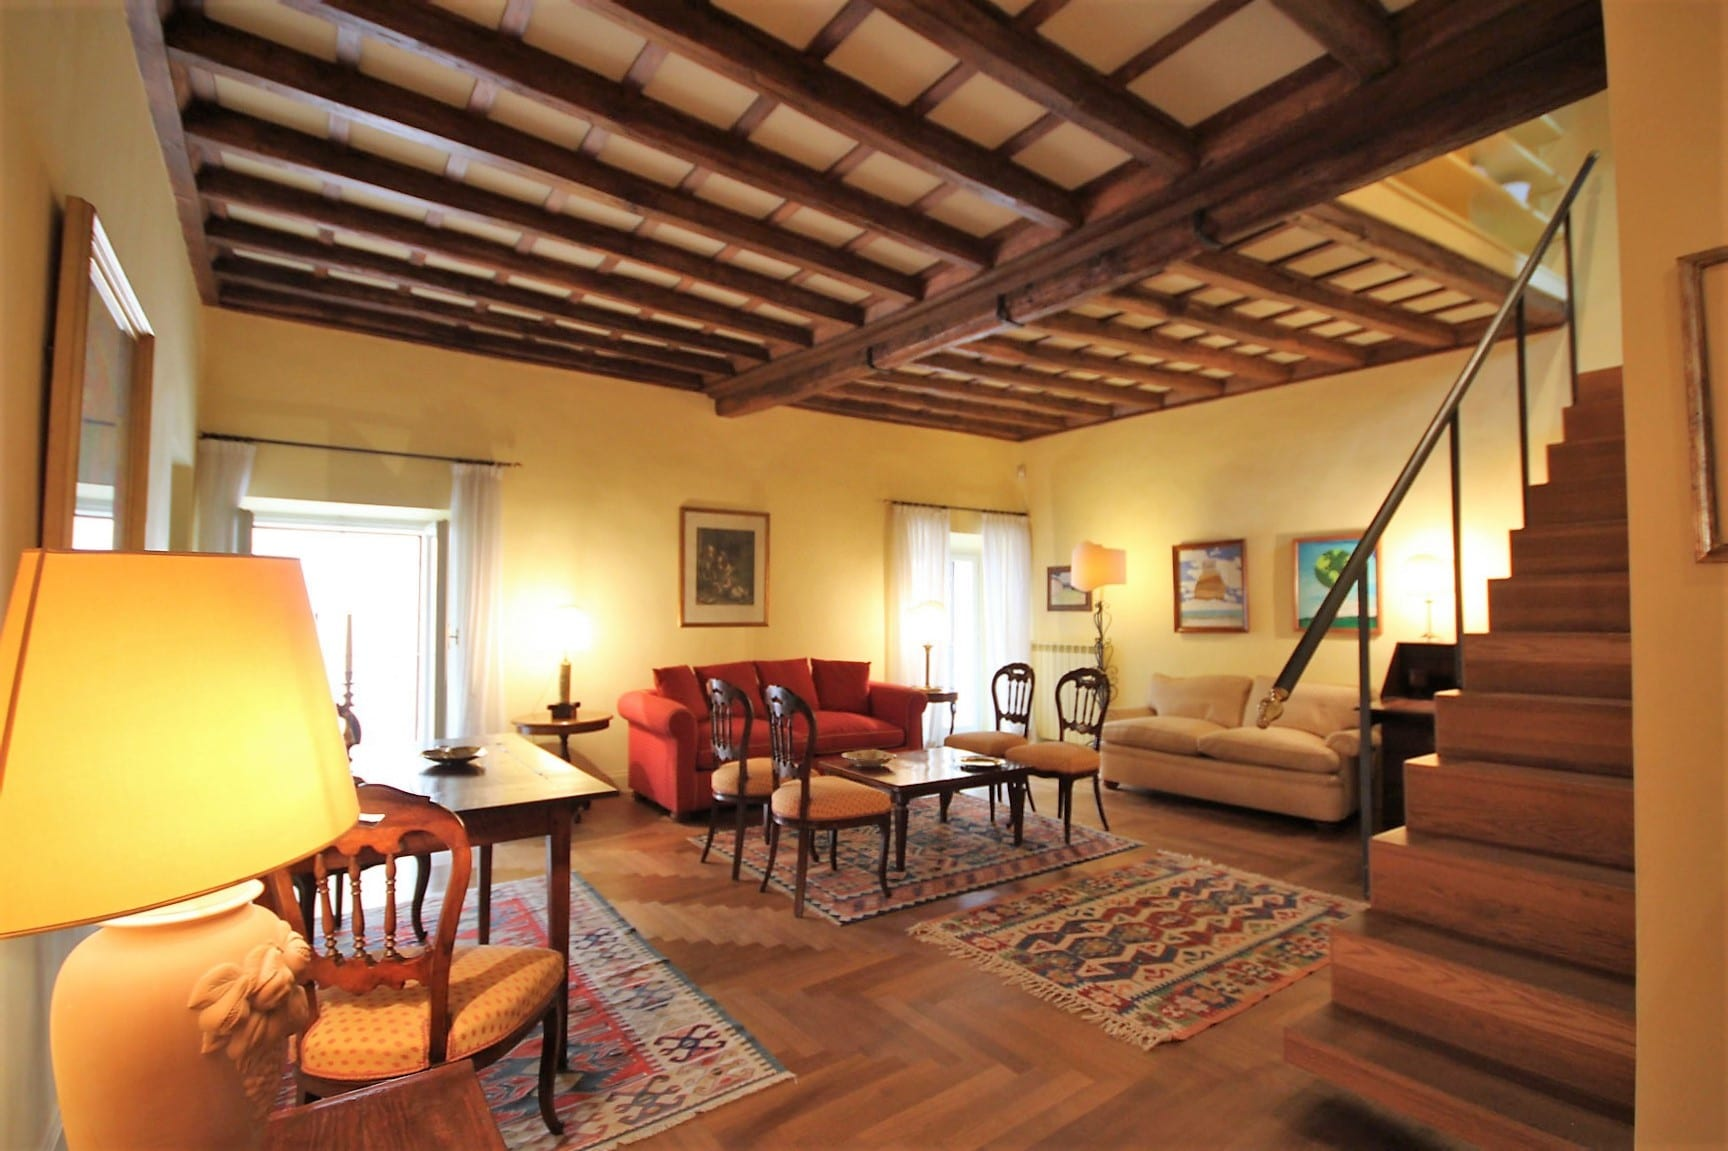 Class country homes class country homes immobili for Uffici in affitto roma centro